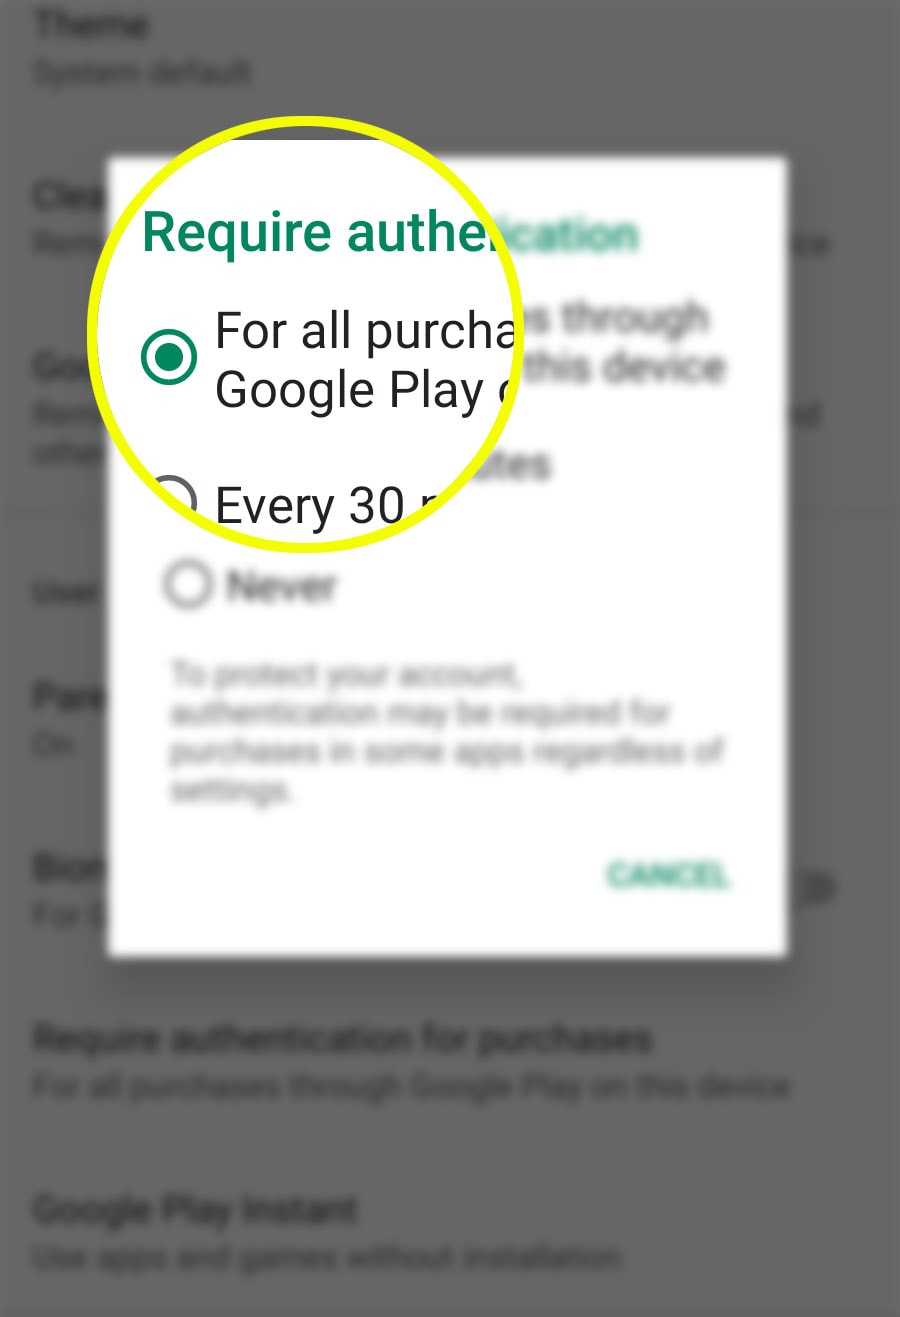 authenticate galaxy s20 play store purchases - enable authentication